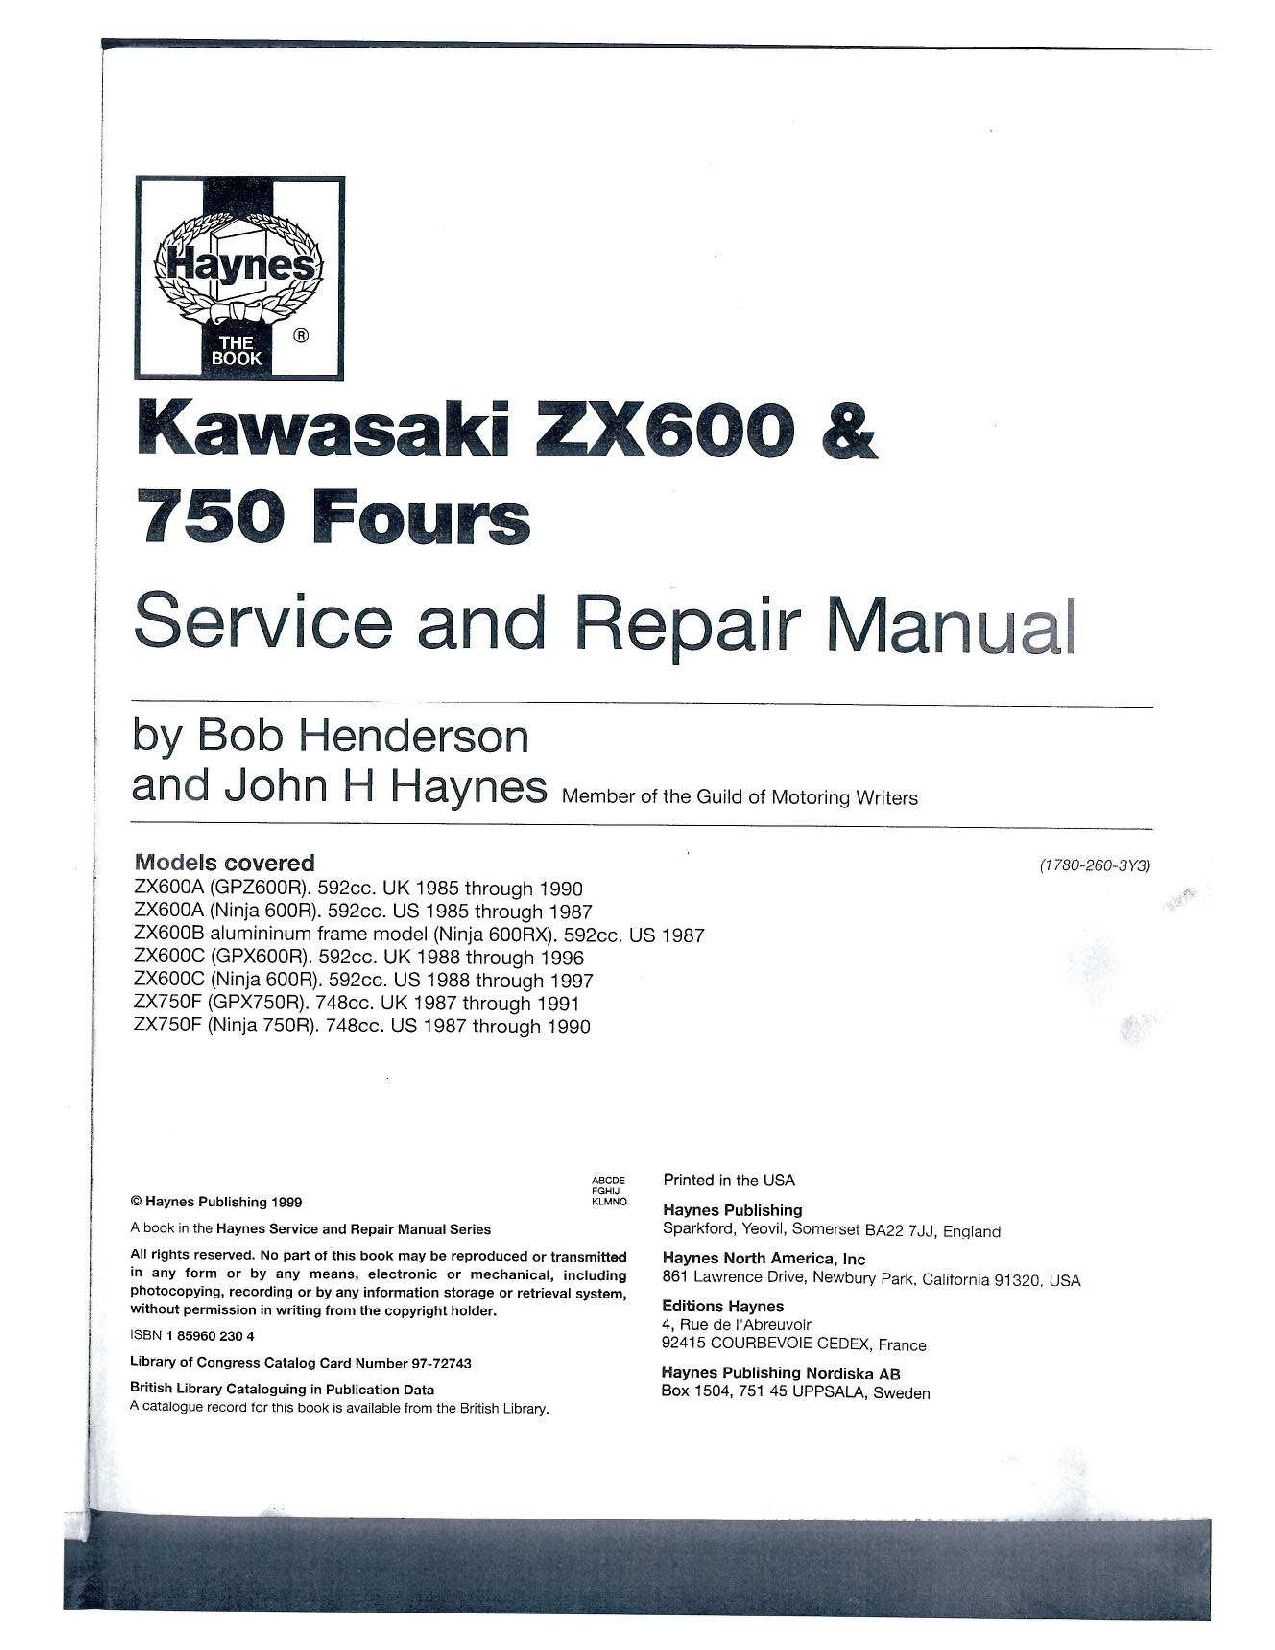 Kawasaki Zx 600 Gpz Gpx 750 Fours Service And Repair Manual Pdf Download Service Manual Repair Manual Pdf Download Repair Manuals Manual Repair